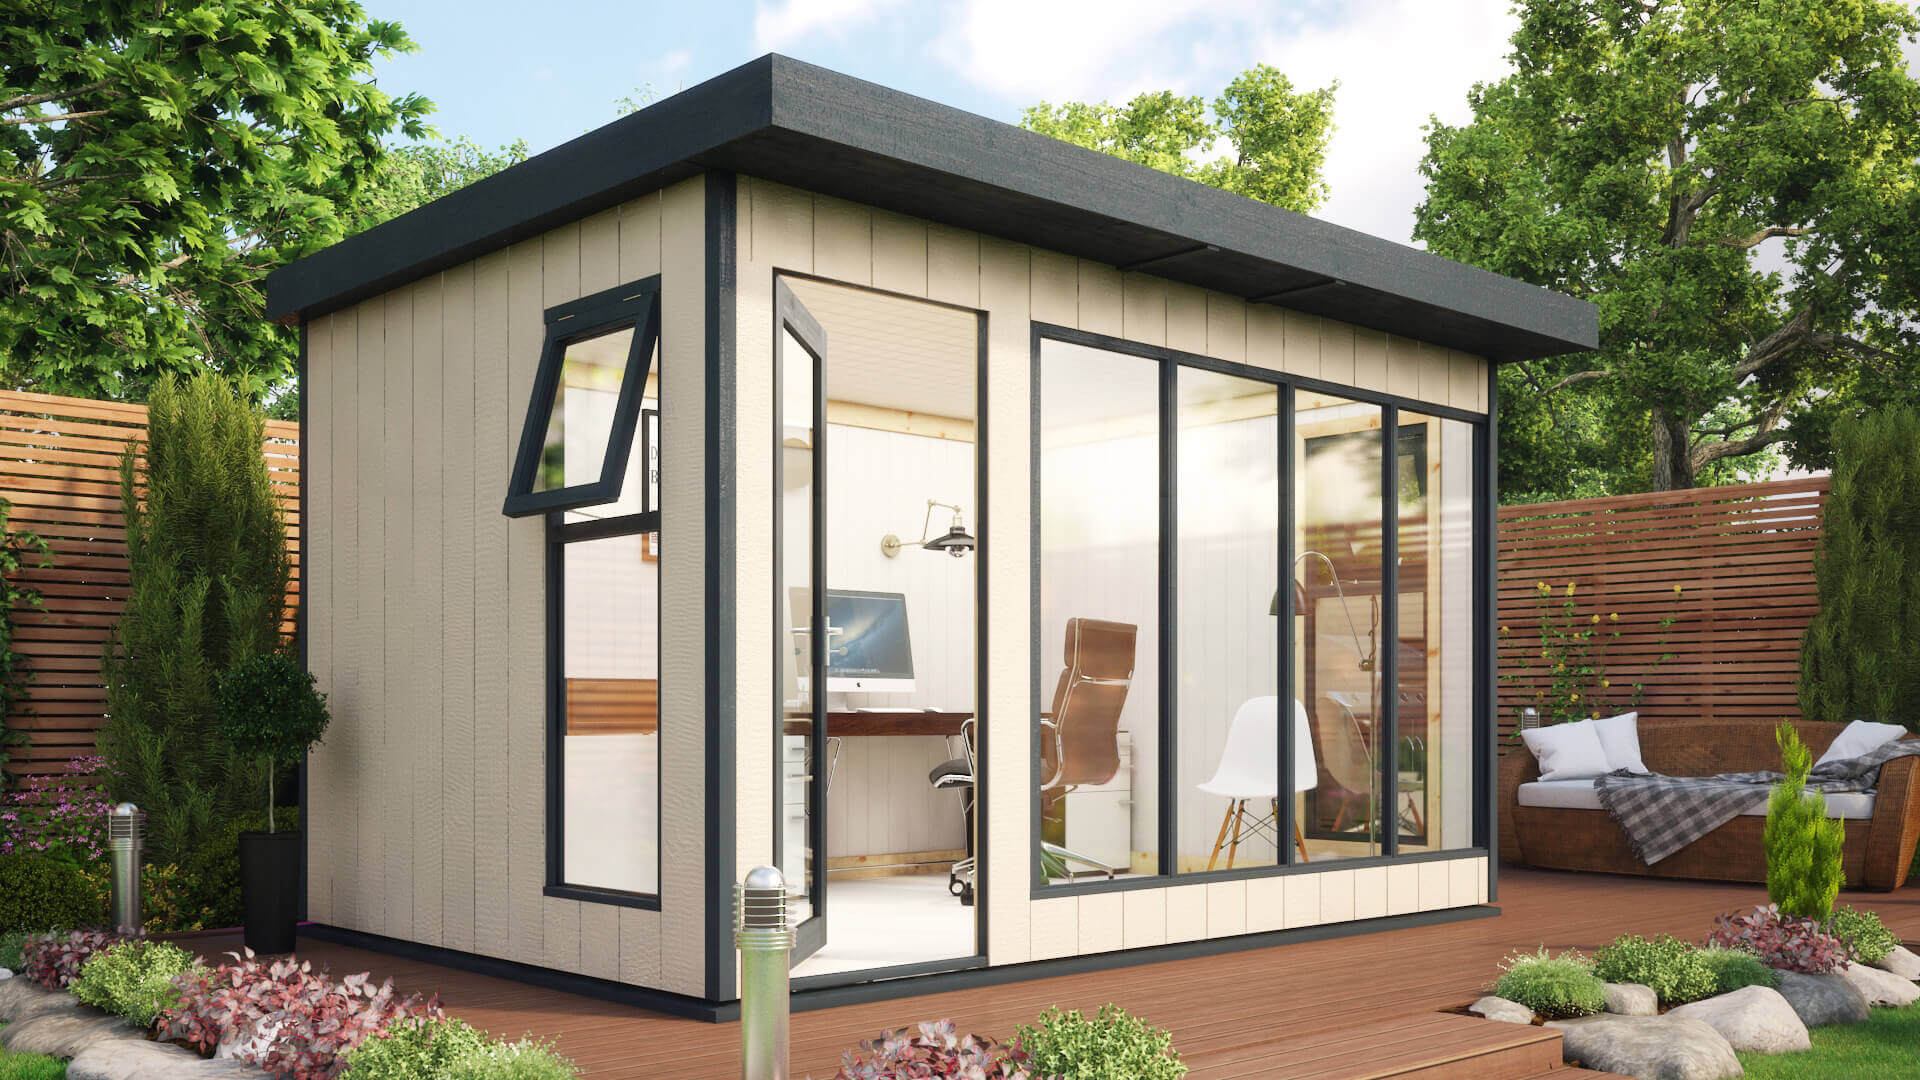 The Project Timber Evolution Insulated Garden Office